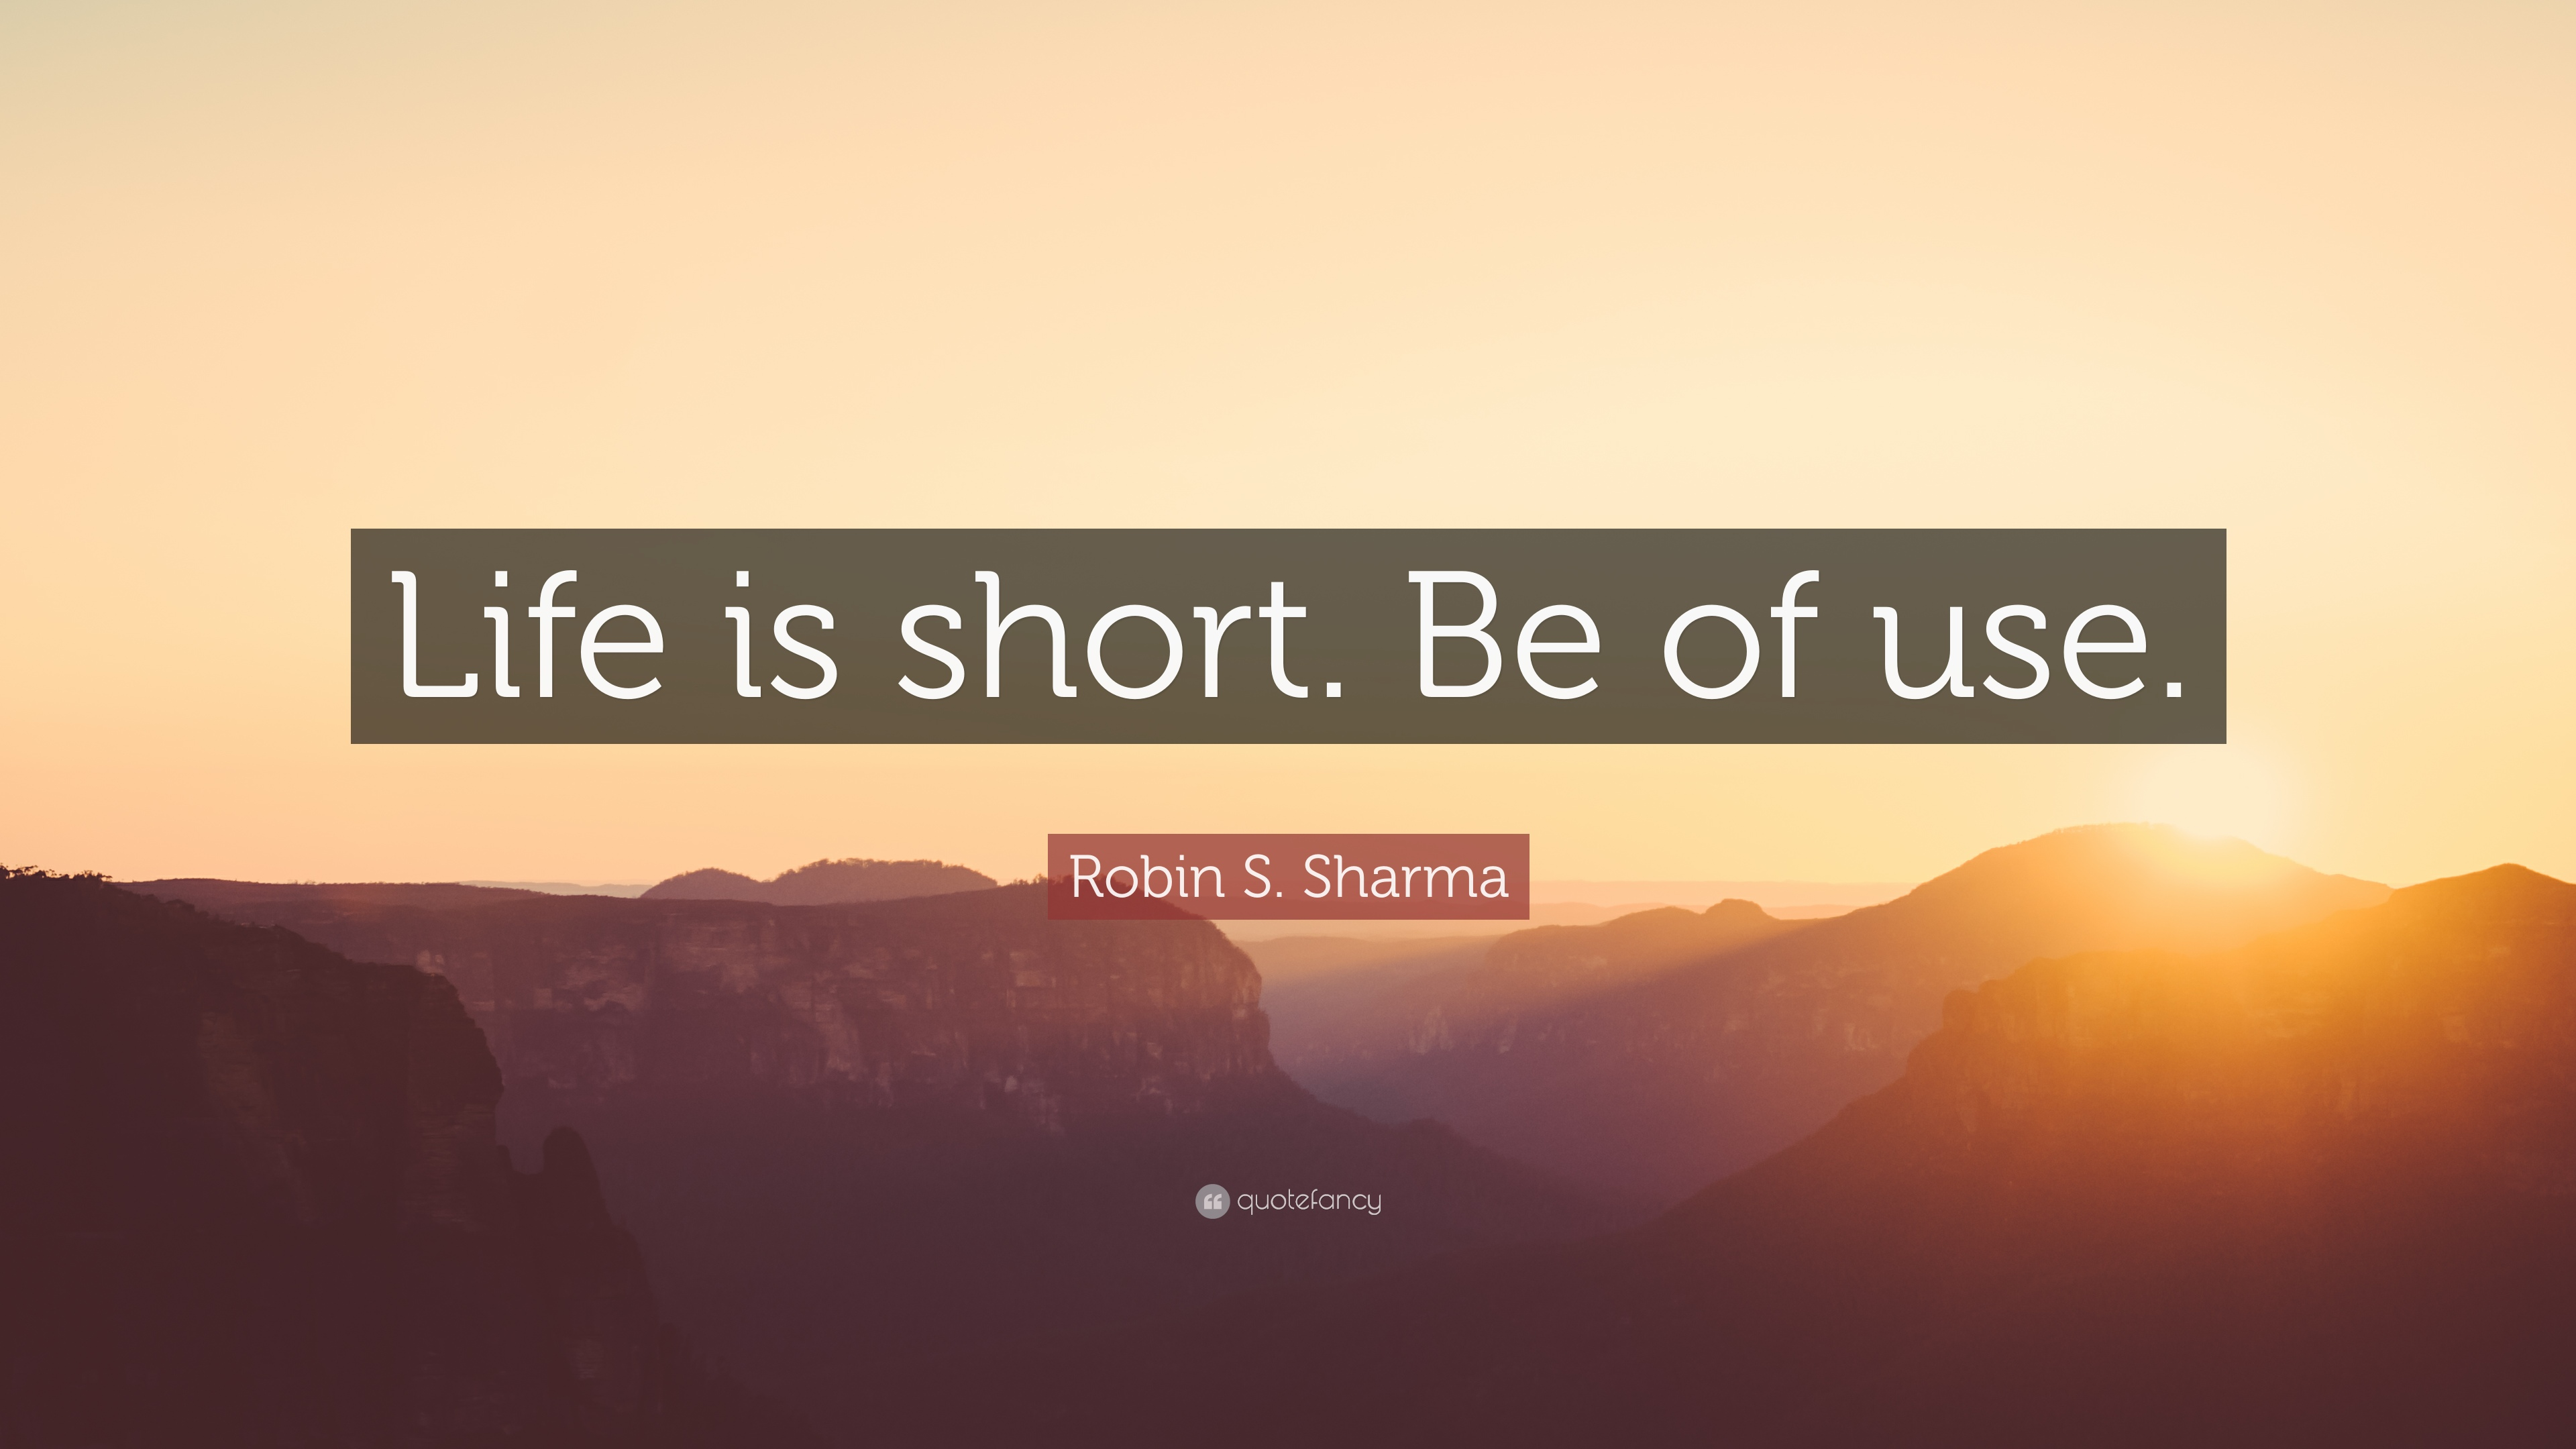 The Truth Of Life Quotes Life Is Short Quotes 40 Wallpapers  Quotefancy